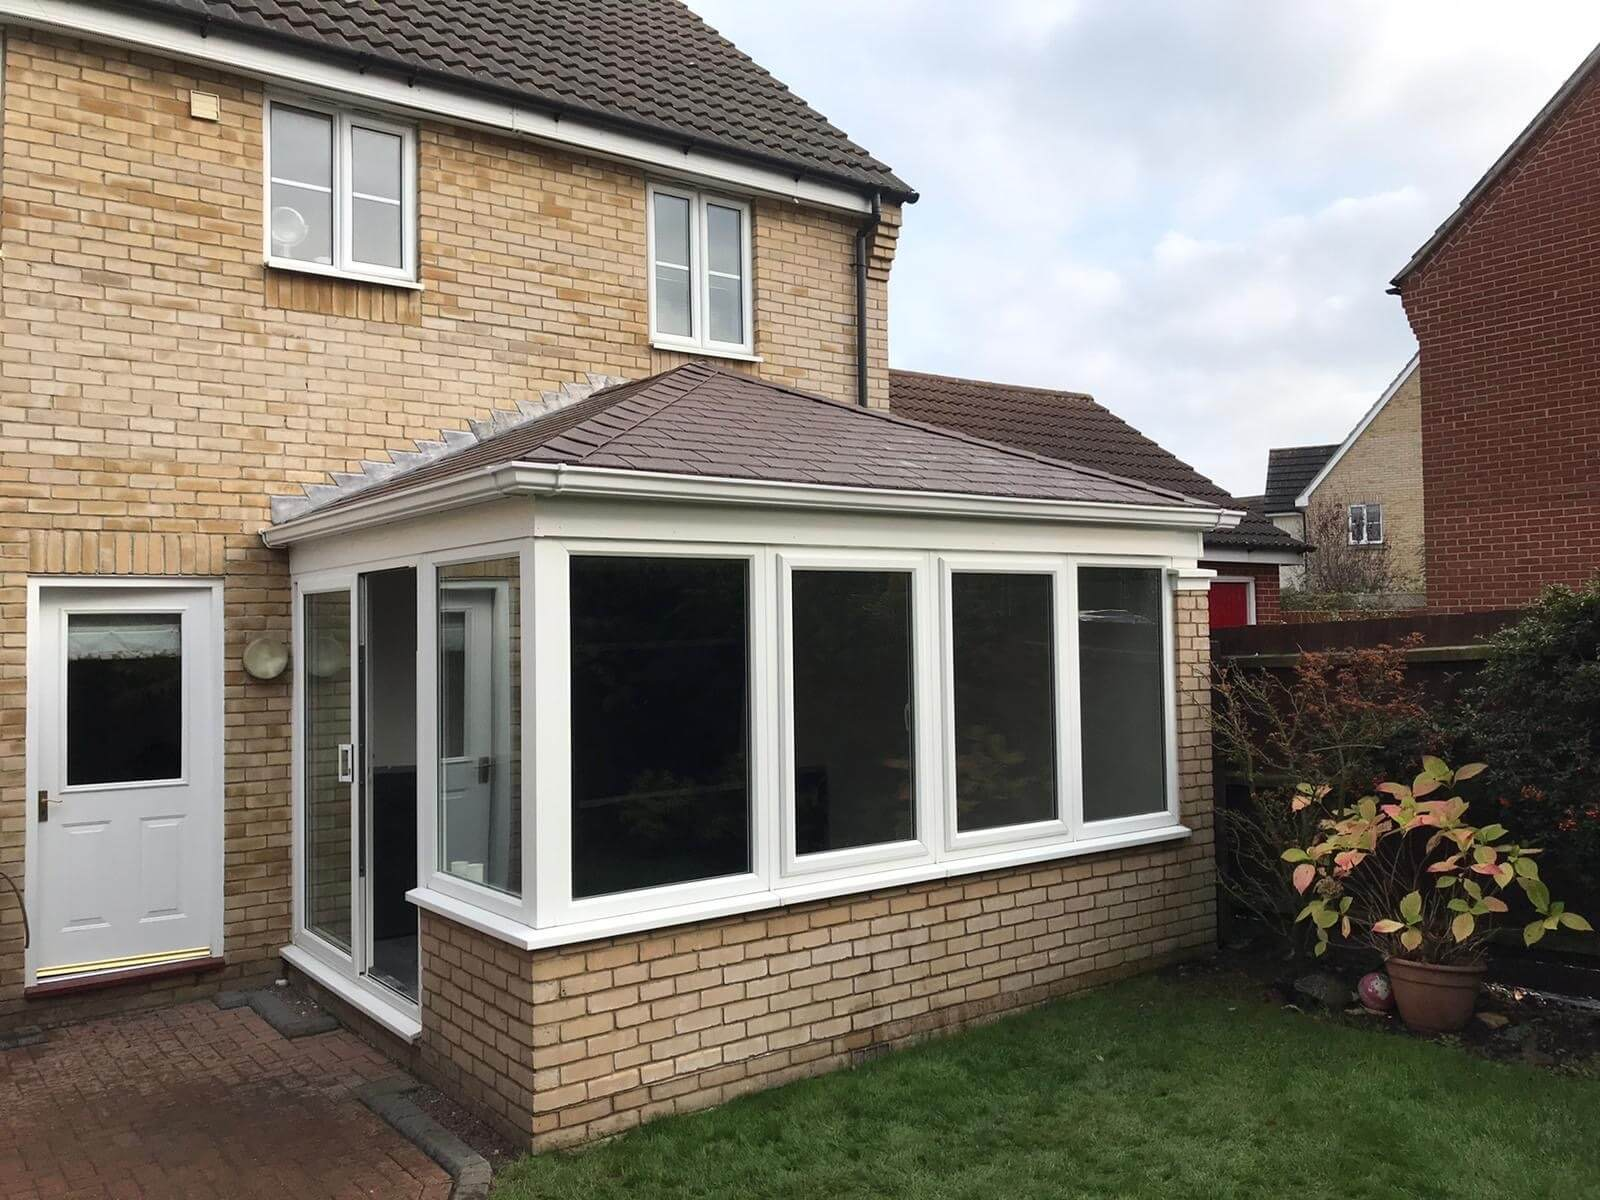 Edwardian_Conservatory_Conversion_Witchford